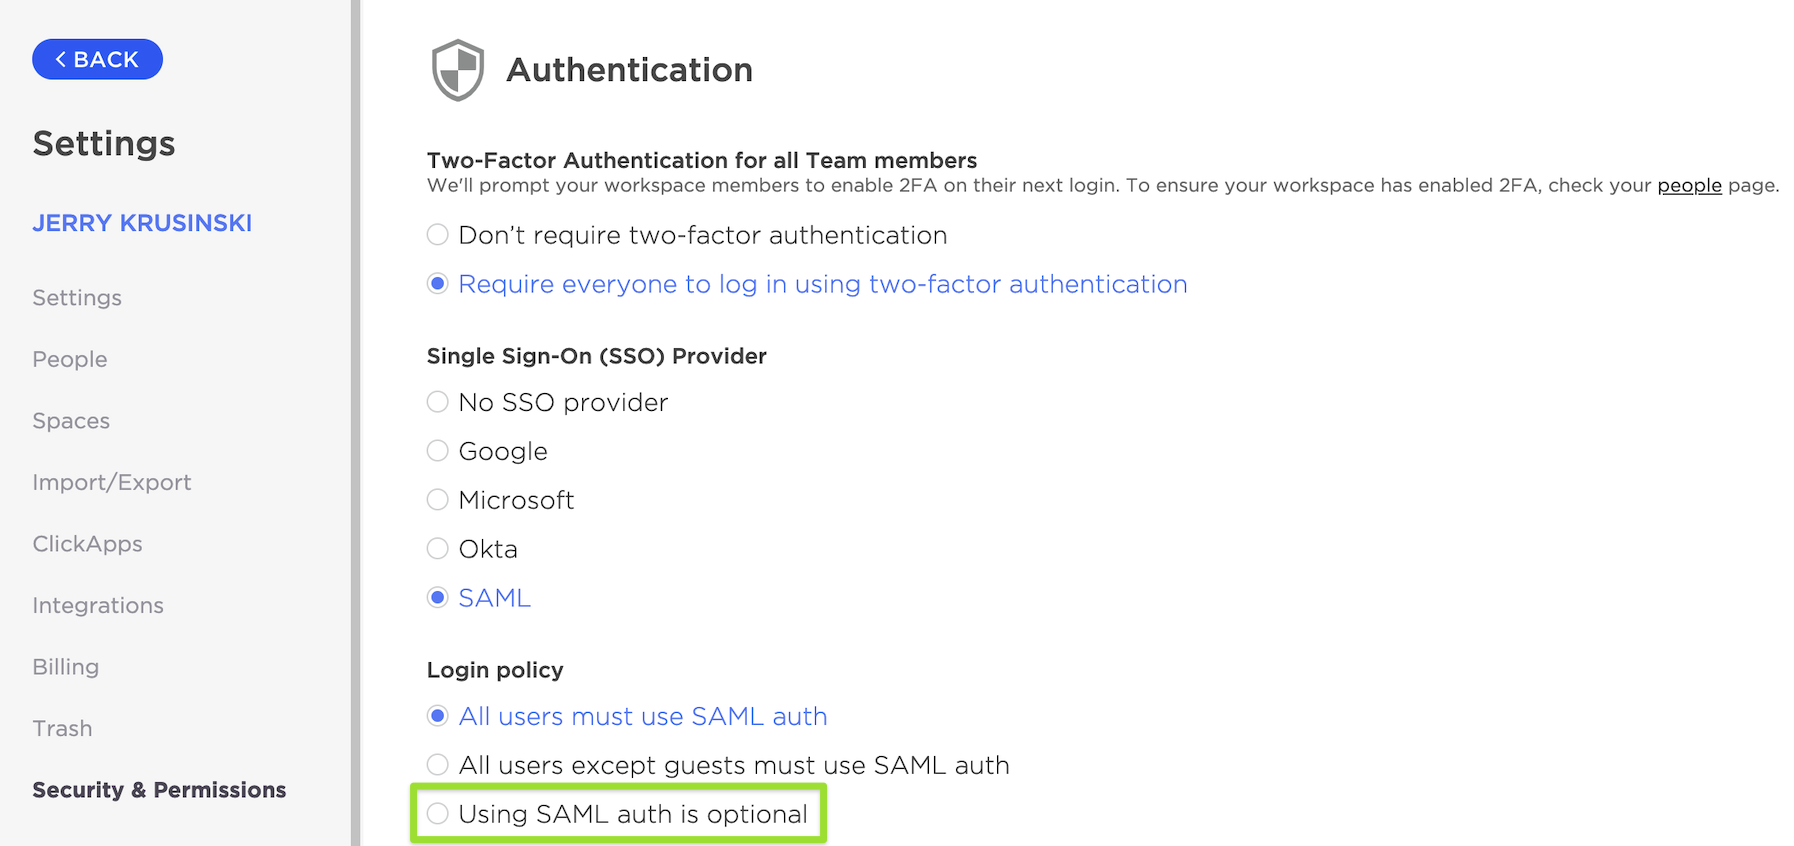 Security & Permissions page highlighting the option to set using SAML SSO as optional for users of your Workspace